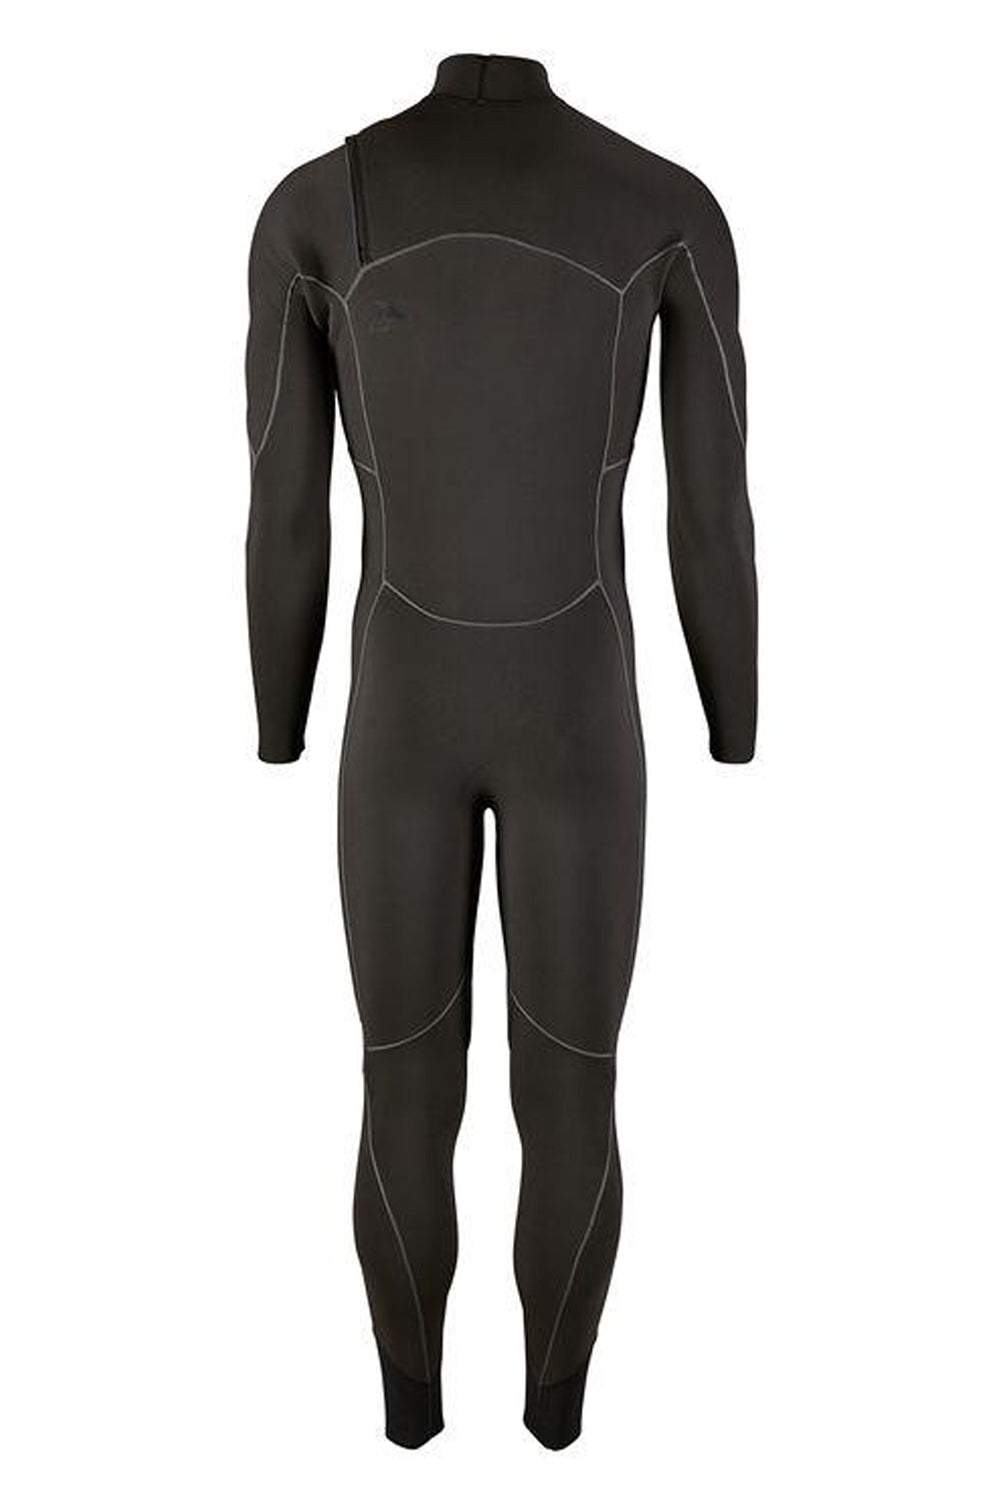 Men's R1 Yulex Front Zip Full Suit Wetsuit